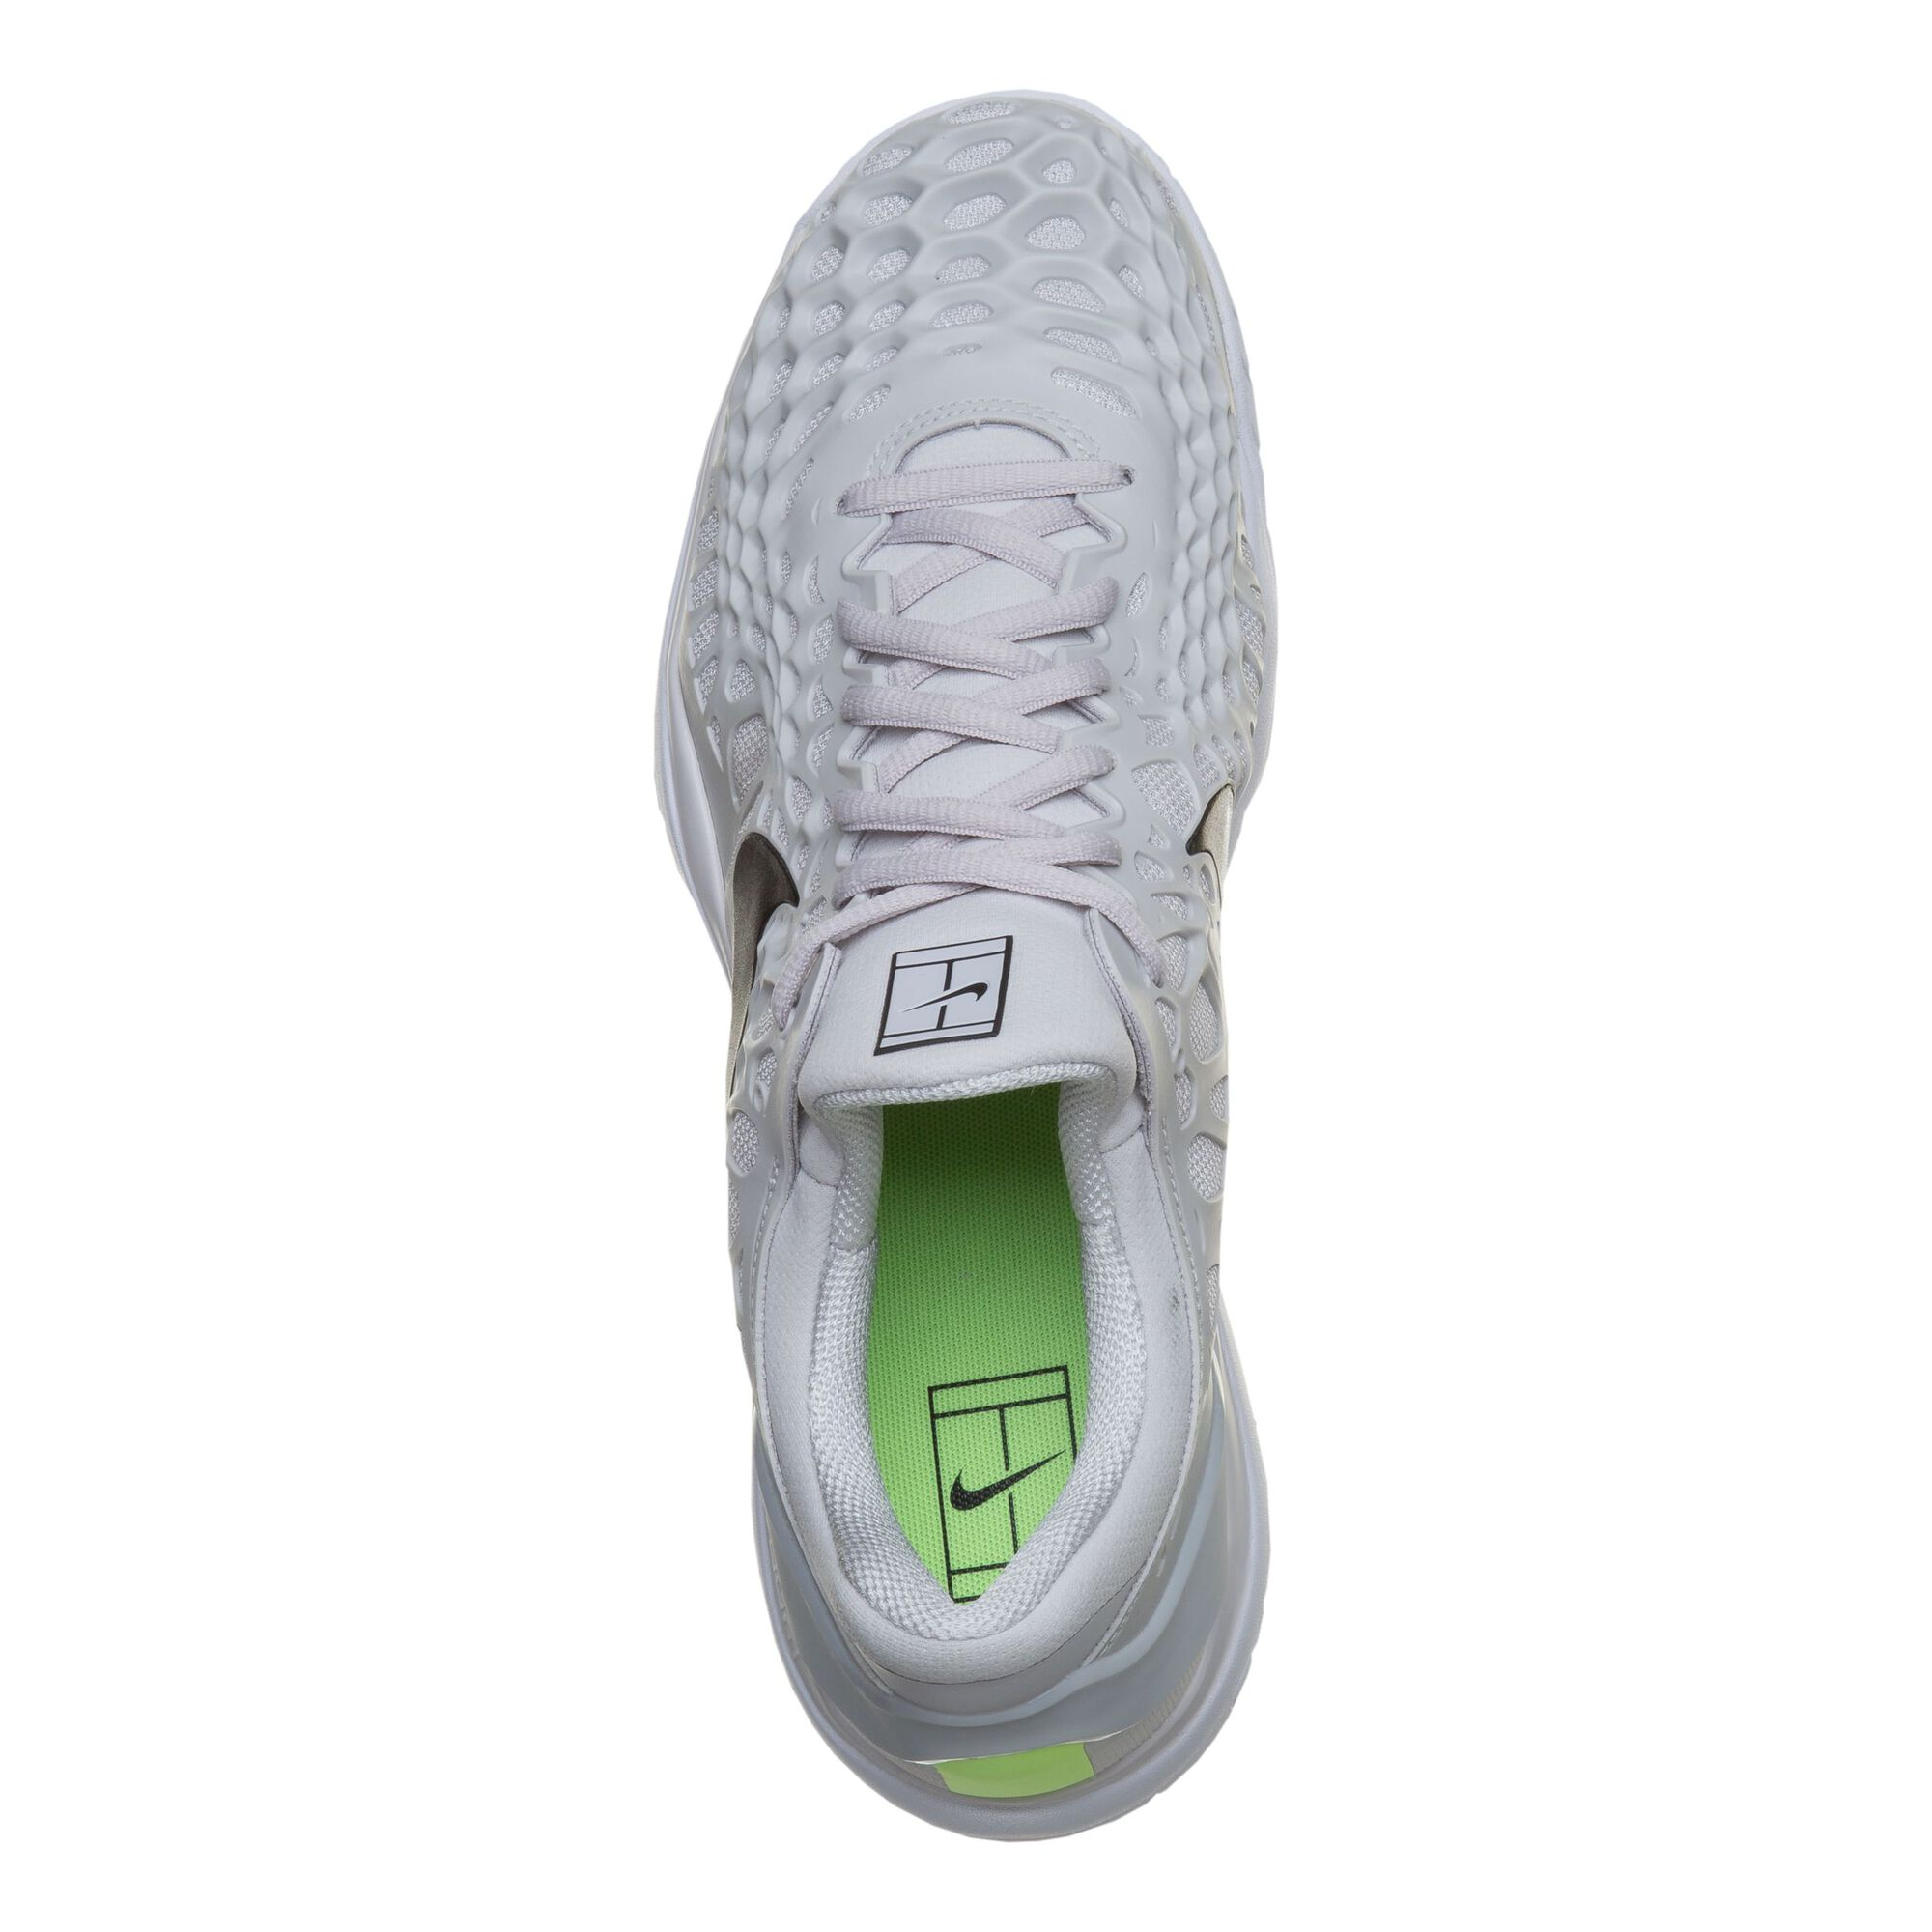 online store 42402 51496 ... Nike  Nike  Nike  Nike  Nike  Nike. Air Zoom Cage 3 ...